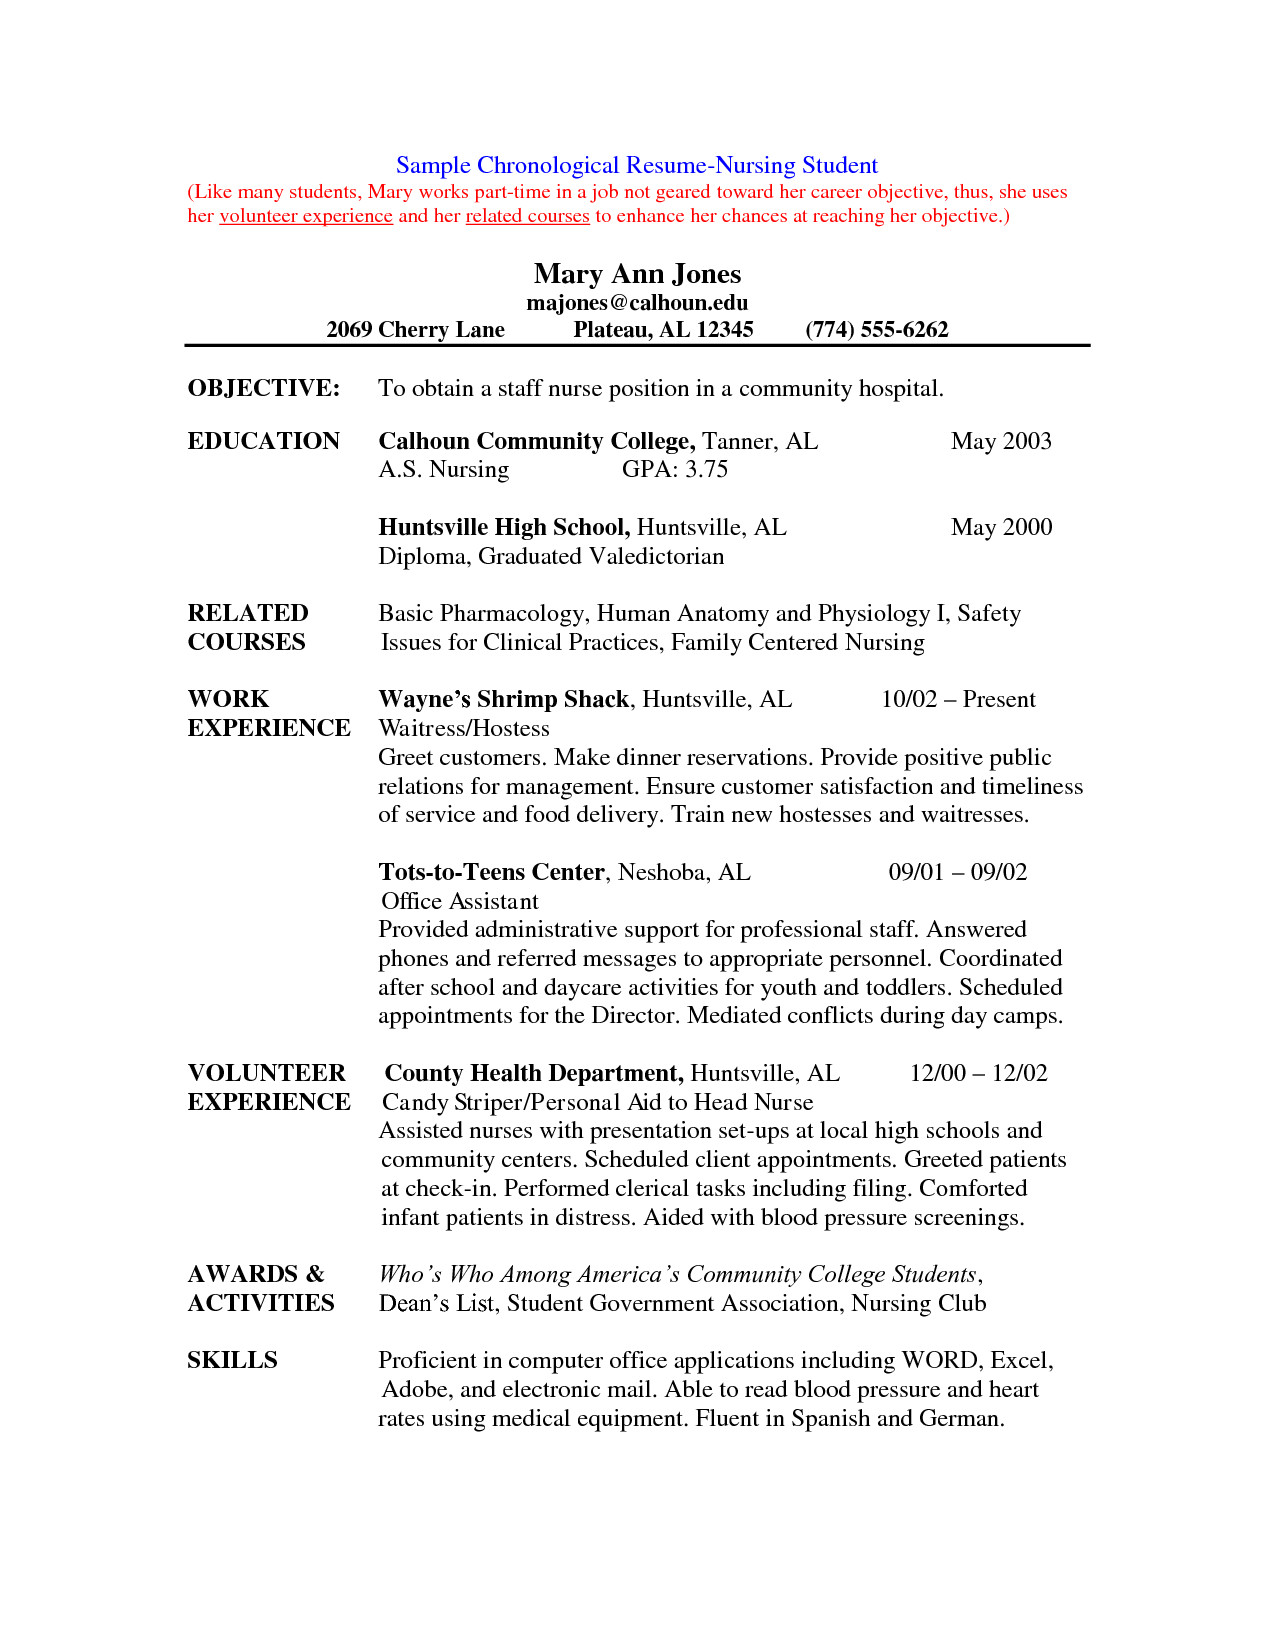 Nursing Student Resume Template Cover Letters for Nursing Job Application Pdf